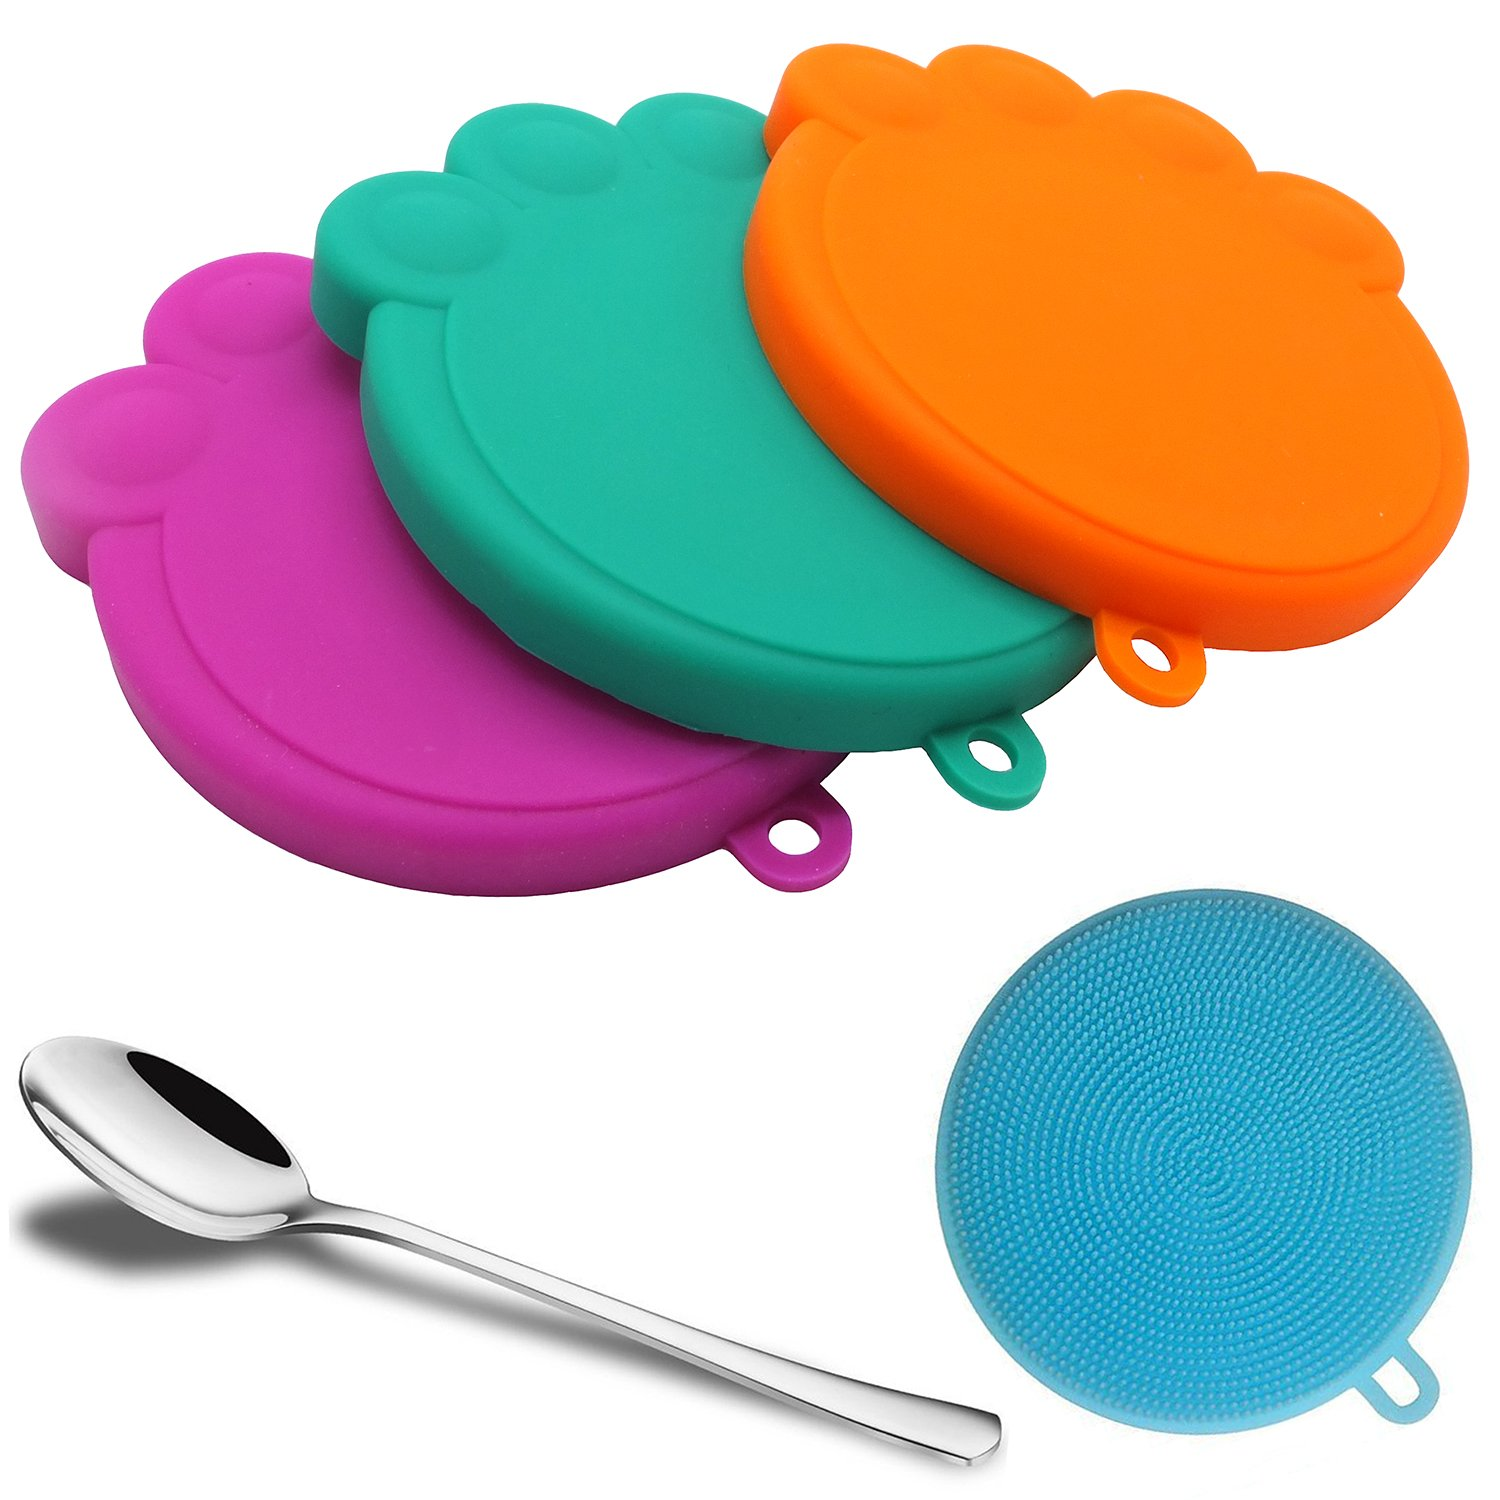 Joytale Universal Pet Food Can Covers/3 Pack/BPA Free & FDA Grade Silicone Created/Fits All Standard Size Dog and Cat Can Top